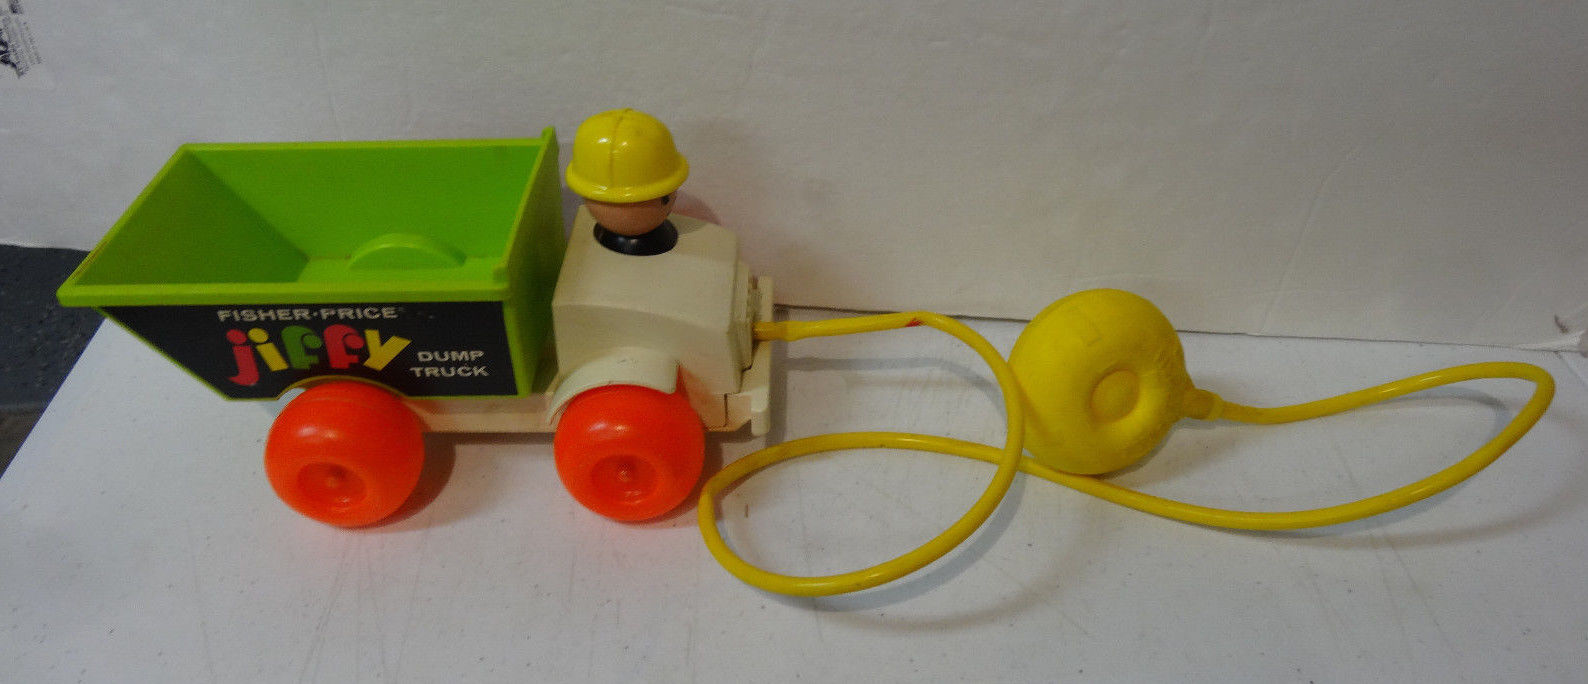 Vintage 1970 FISHER PRICE Jiffy Dump Truck #156 Pull Toy Head Moves & Dumps